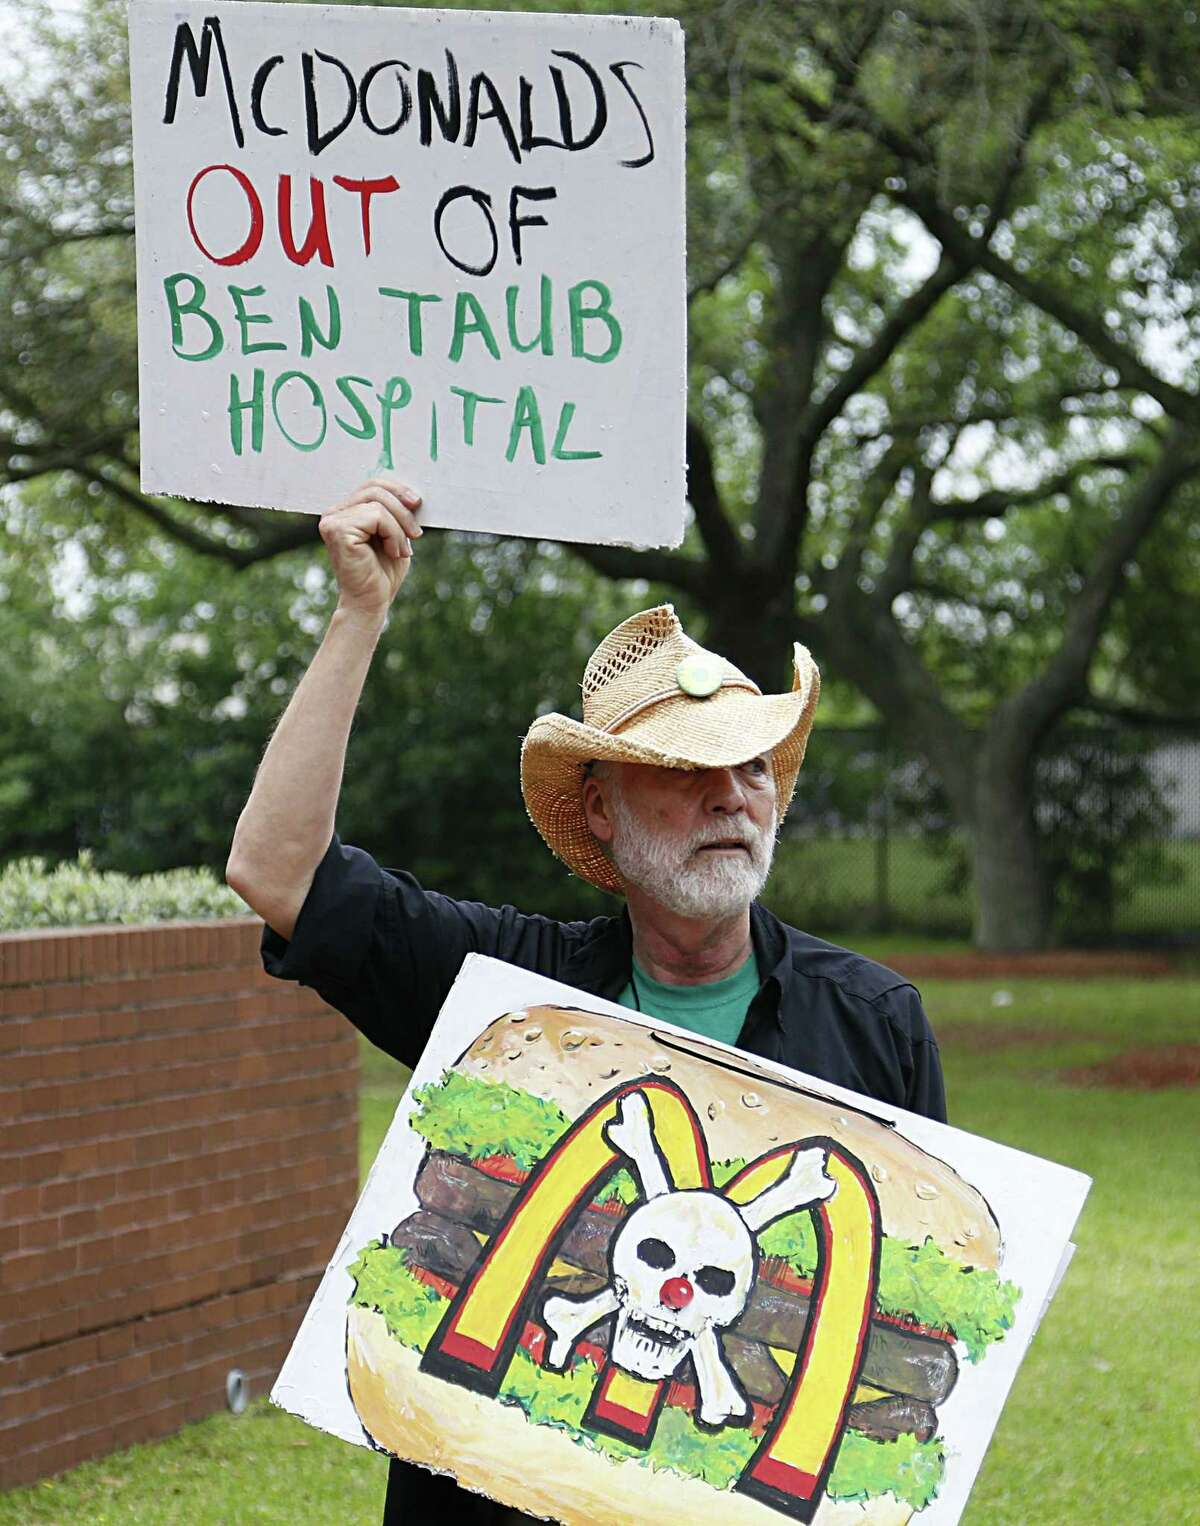 Value the Meal volunteer Don Cook holds up signs while demonstrating in front of Harris Health after presenting a petition to the board to remove McDonald's from Ben Taub Hospital Thursday, March 31, 2016, in Houston. ( James Nielsen / Houston Chronicle )